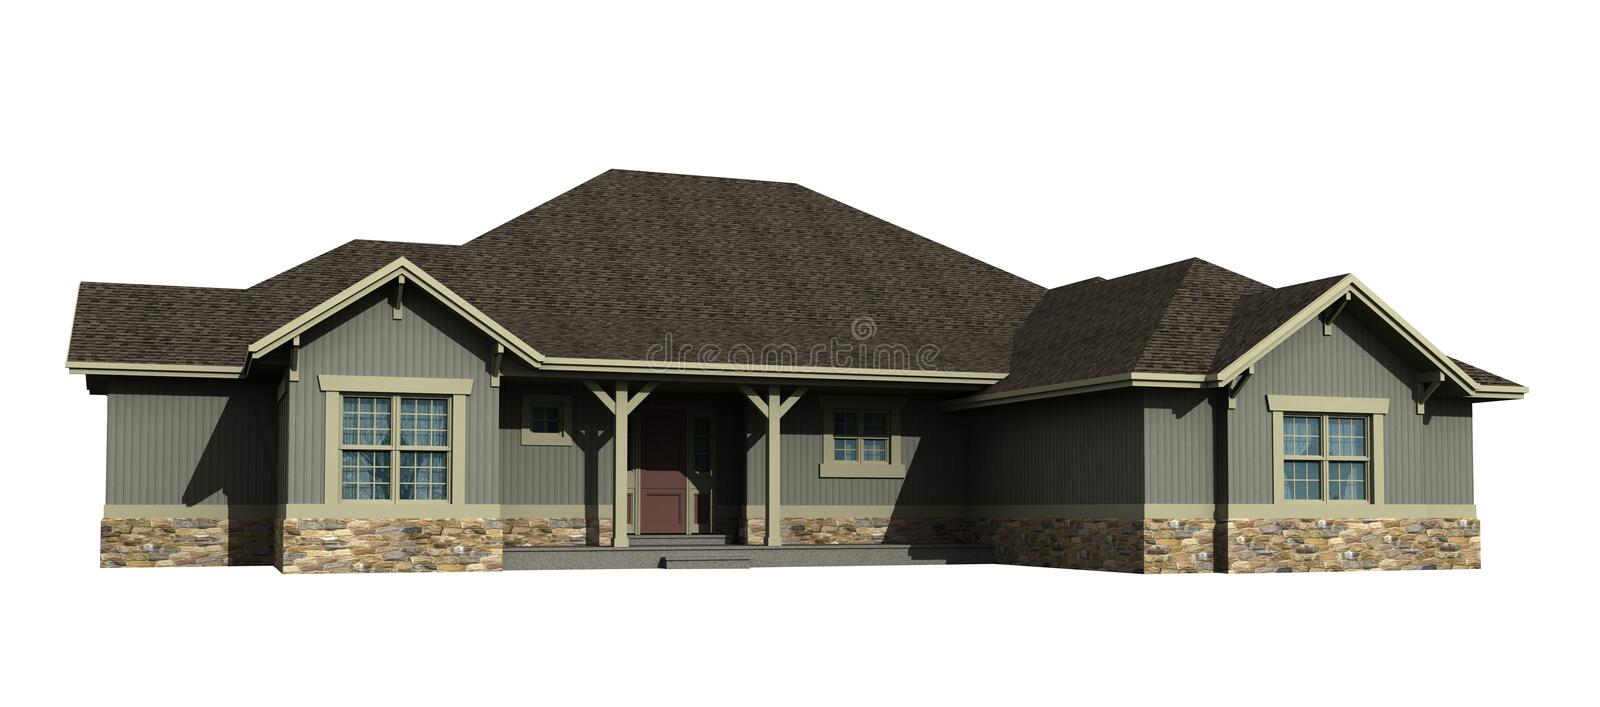 3d model of one level house royalty free stock photos